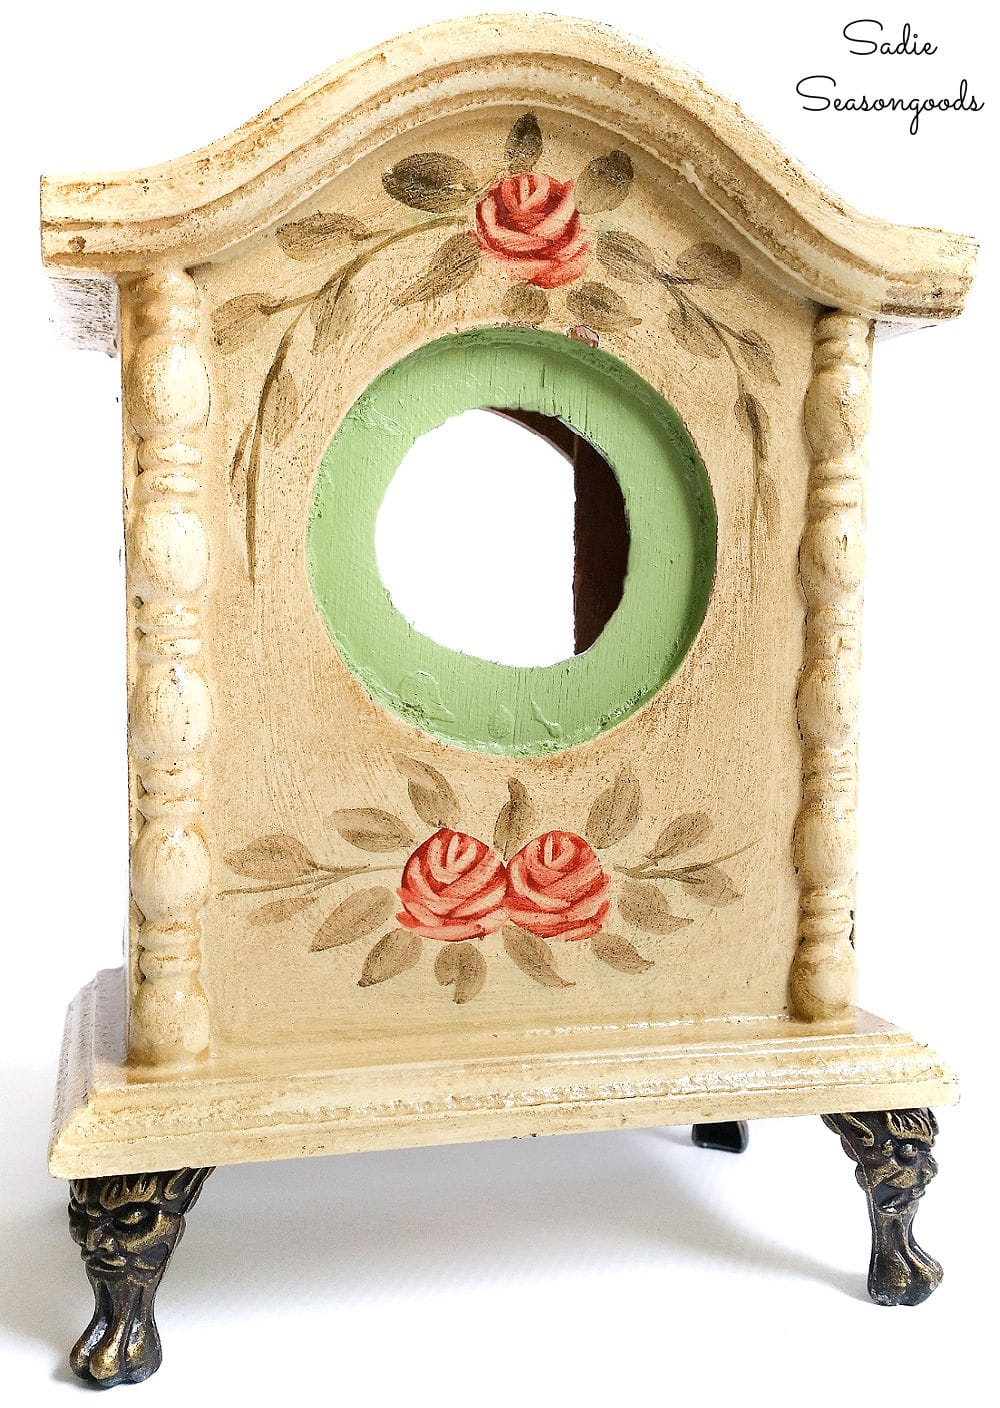 Repurposed birdhouse from a decorative table clock